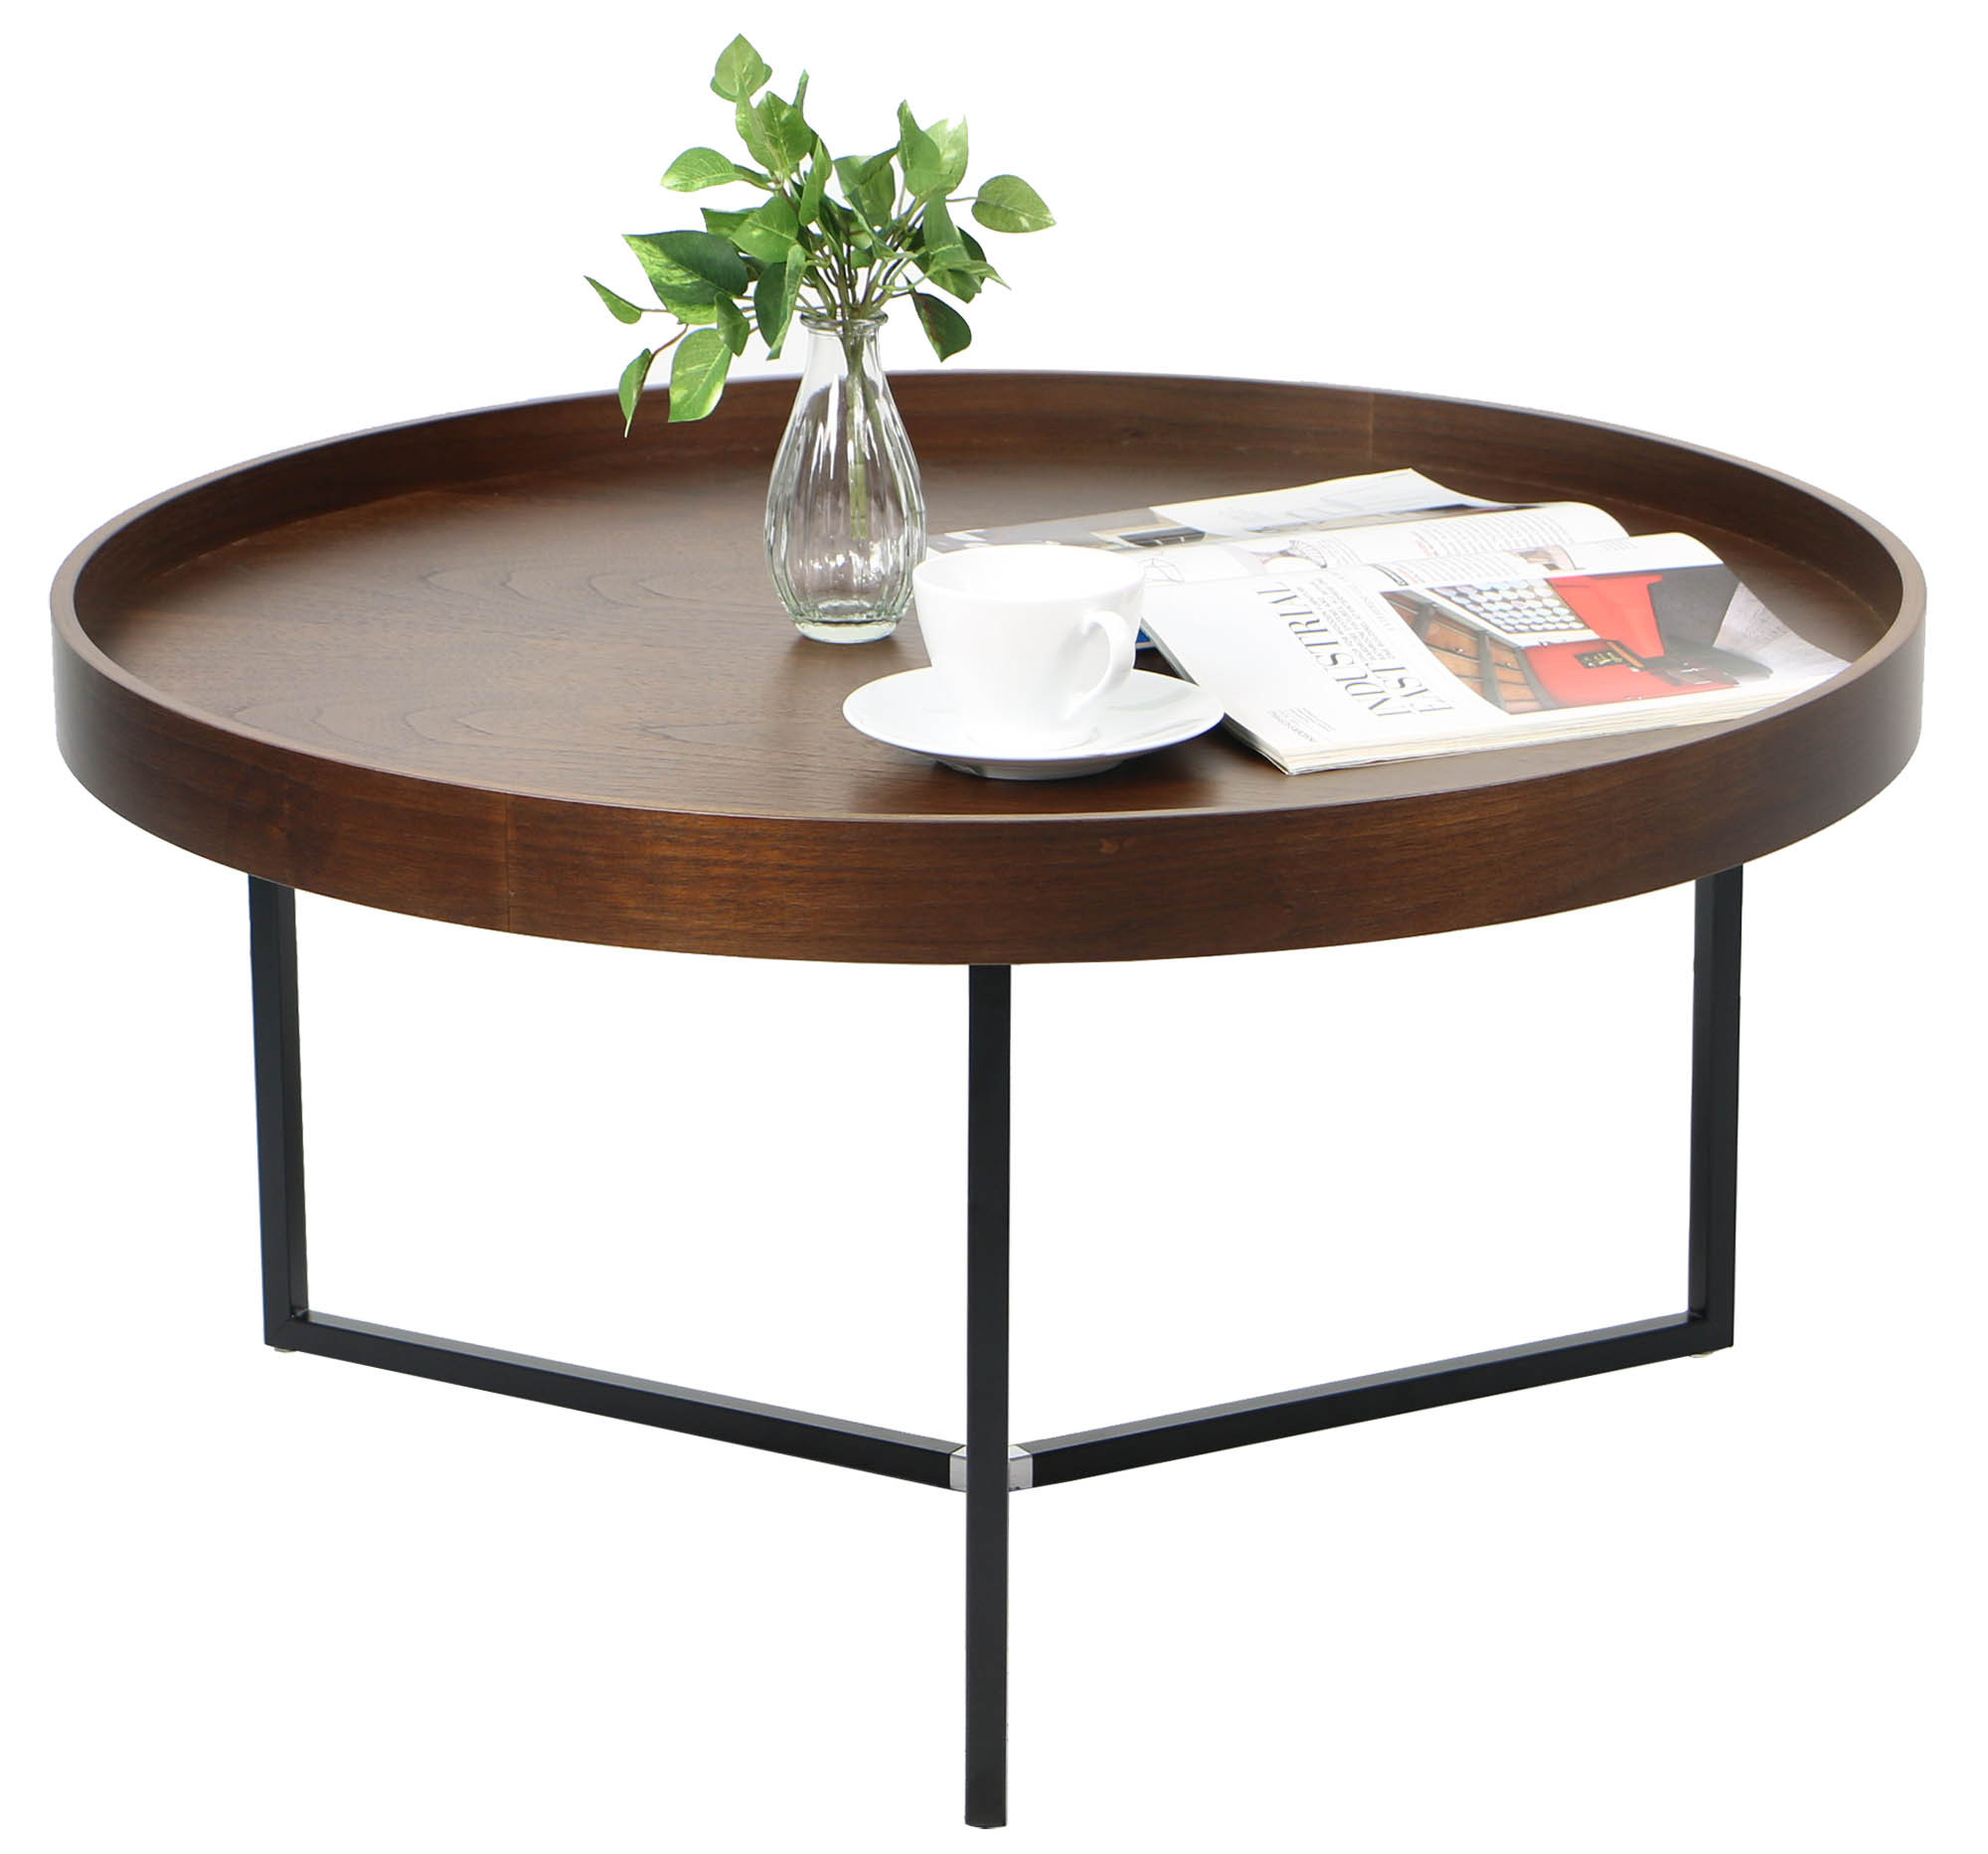 Barrie walnut round tray table coffee tables living room furniture furniture home d cor Decorative trays for coffee tables